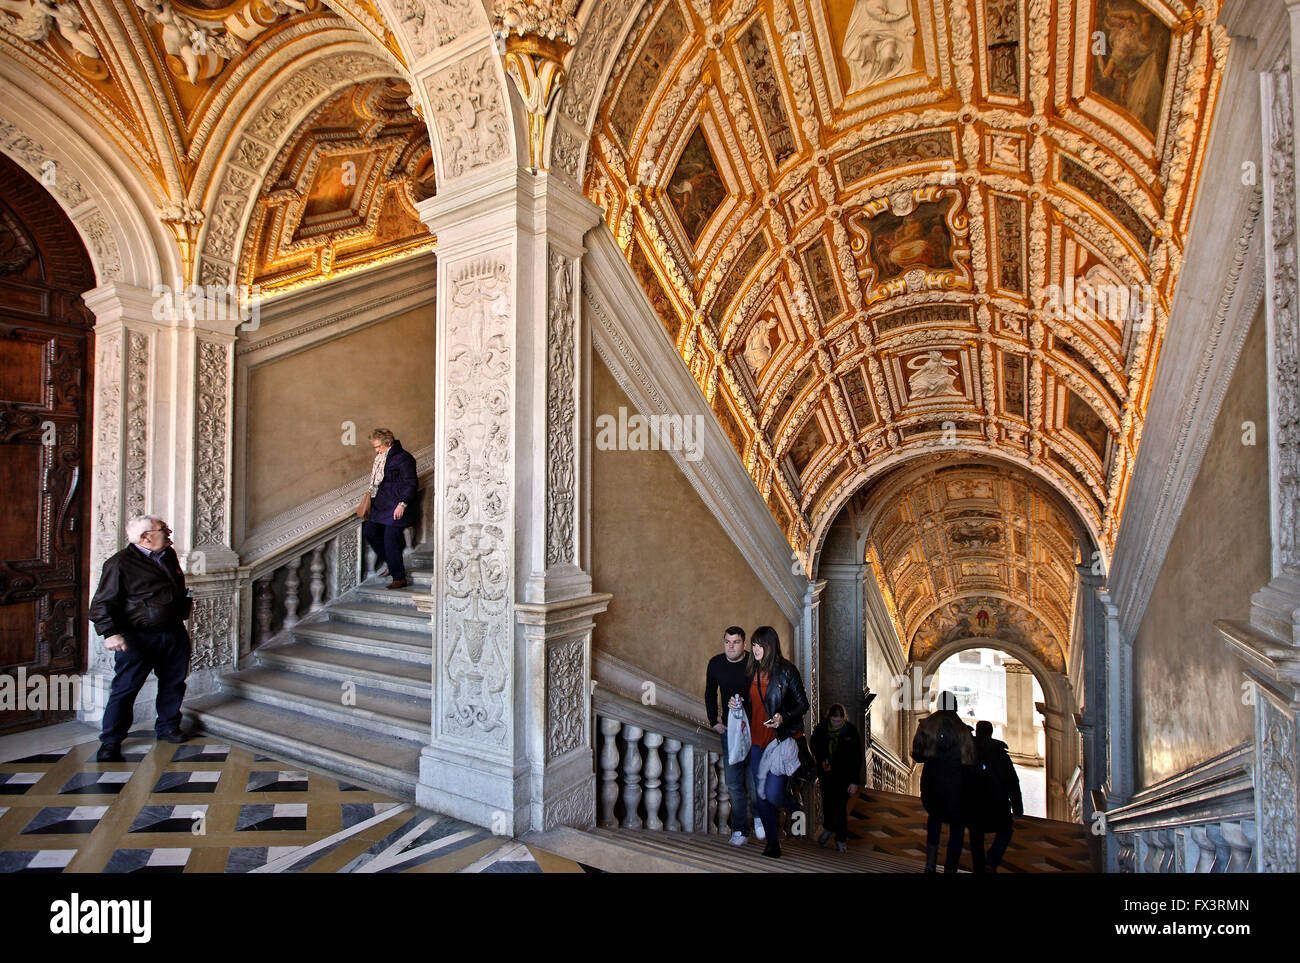 doge up html with Stock Photo The Scala Doro Golden Staircase In Palazzo Ducale Venice Ve O Italy 102117365 on Mechanic Pin Up Tattoos further  together with Stock Photo Venice Doges Palace Palazzo Ducale The Great Council Room 37231994 furthermore Mind Meme in addition 85142.